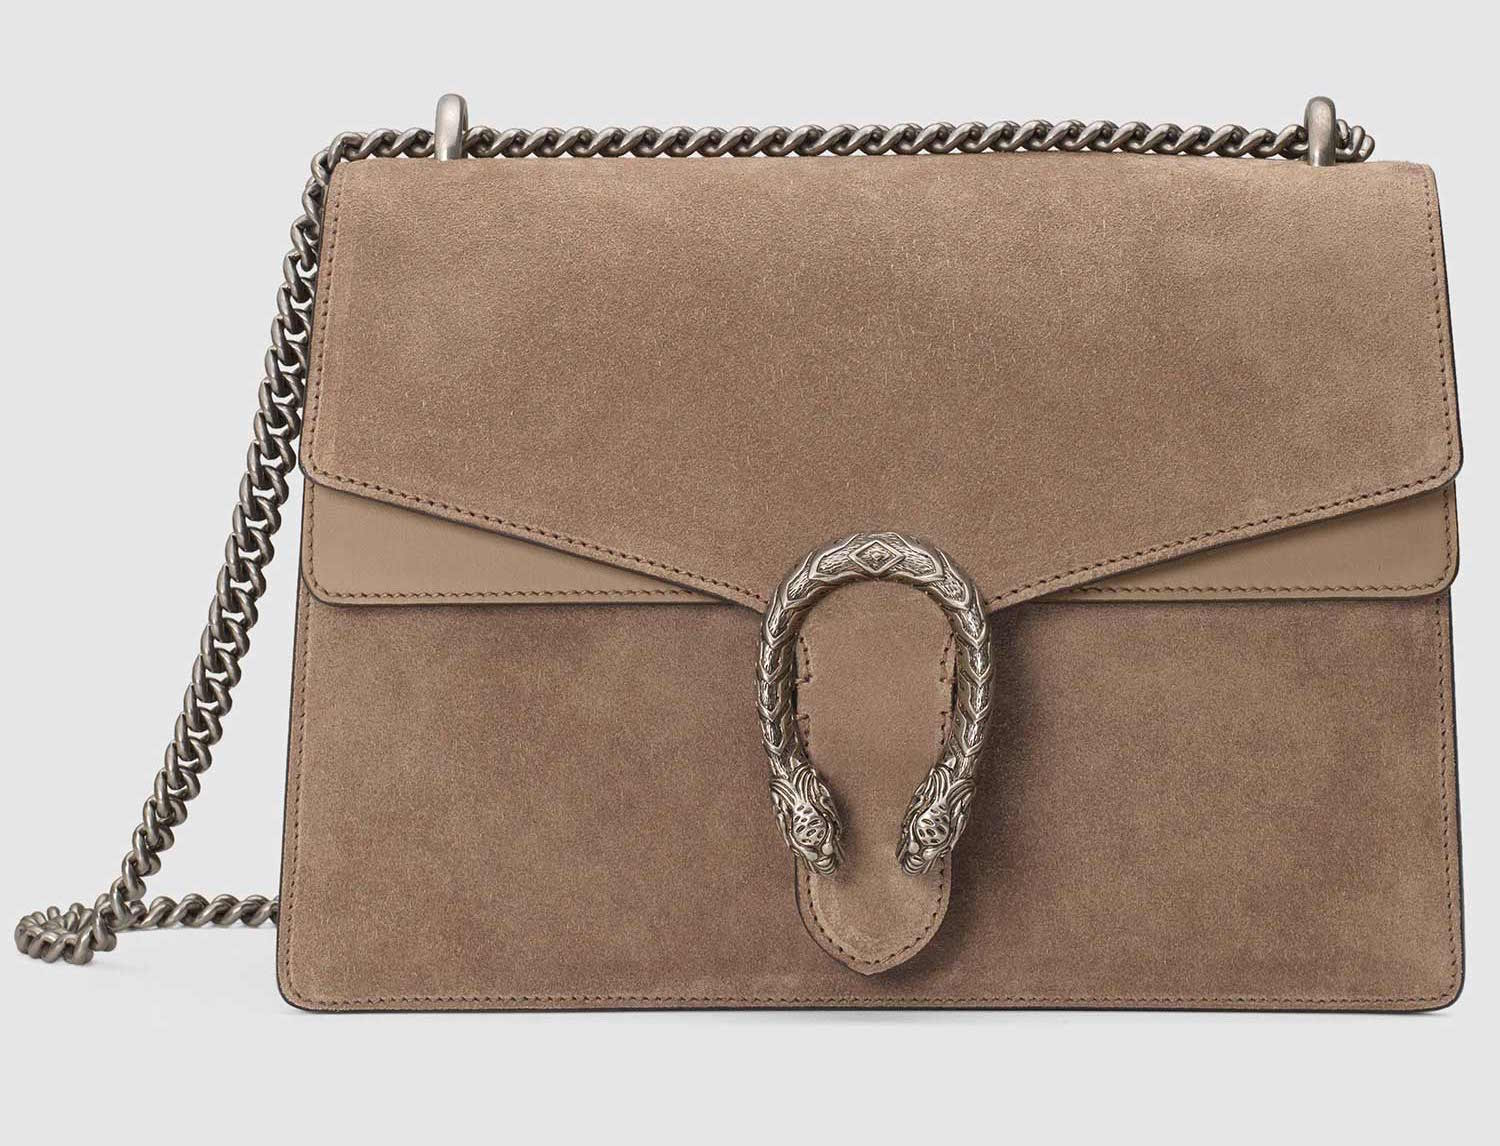 debde559067f GUCCI DIONYSUS TAUPE MEDIUM SHOULDER BAG